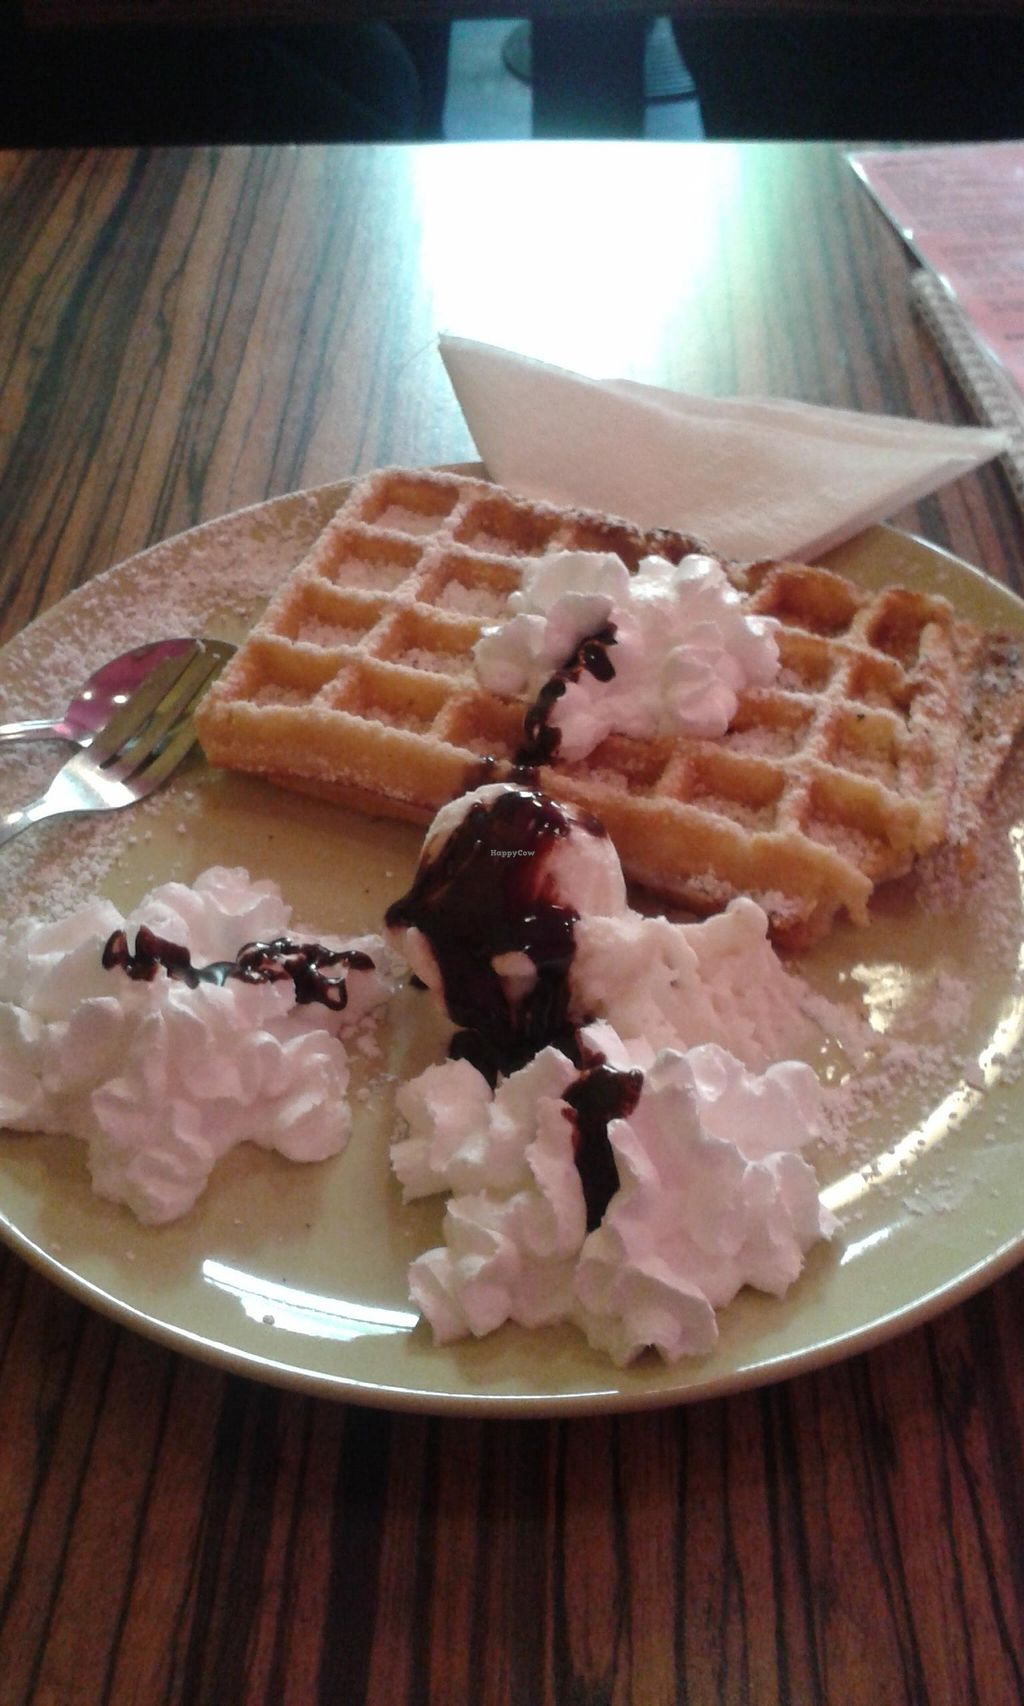 """Photo of Tanne B  by <a href=""""/members/profile/Doro%2A"""">Doro*</a> <br/>Waffle with bounty ice cream,  whipped cream and chocolate topping - all vegan!  <br/> October 18, 2015  - <a href='/contact/abuse/image/35628/121711'>Report</a>"""